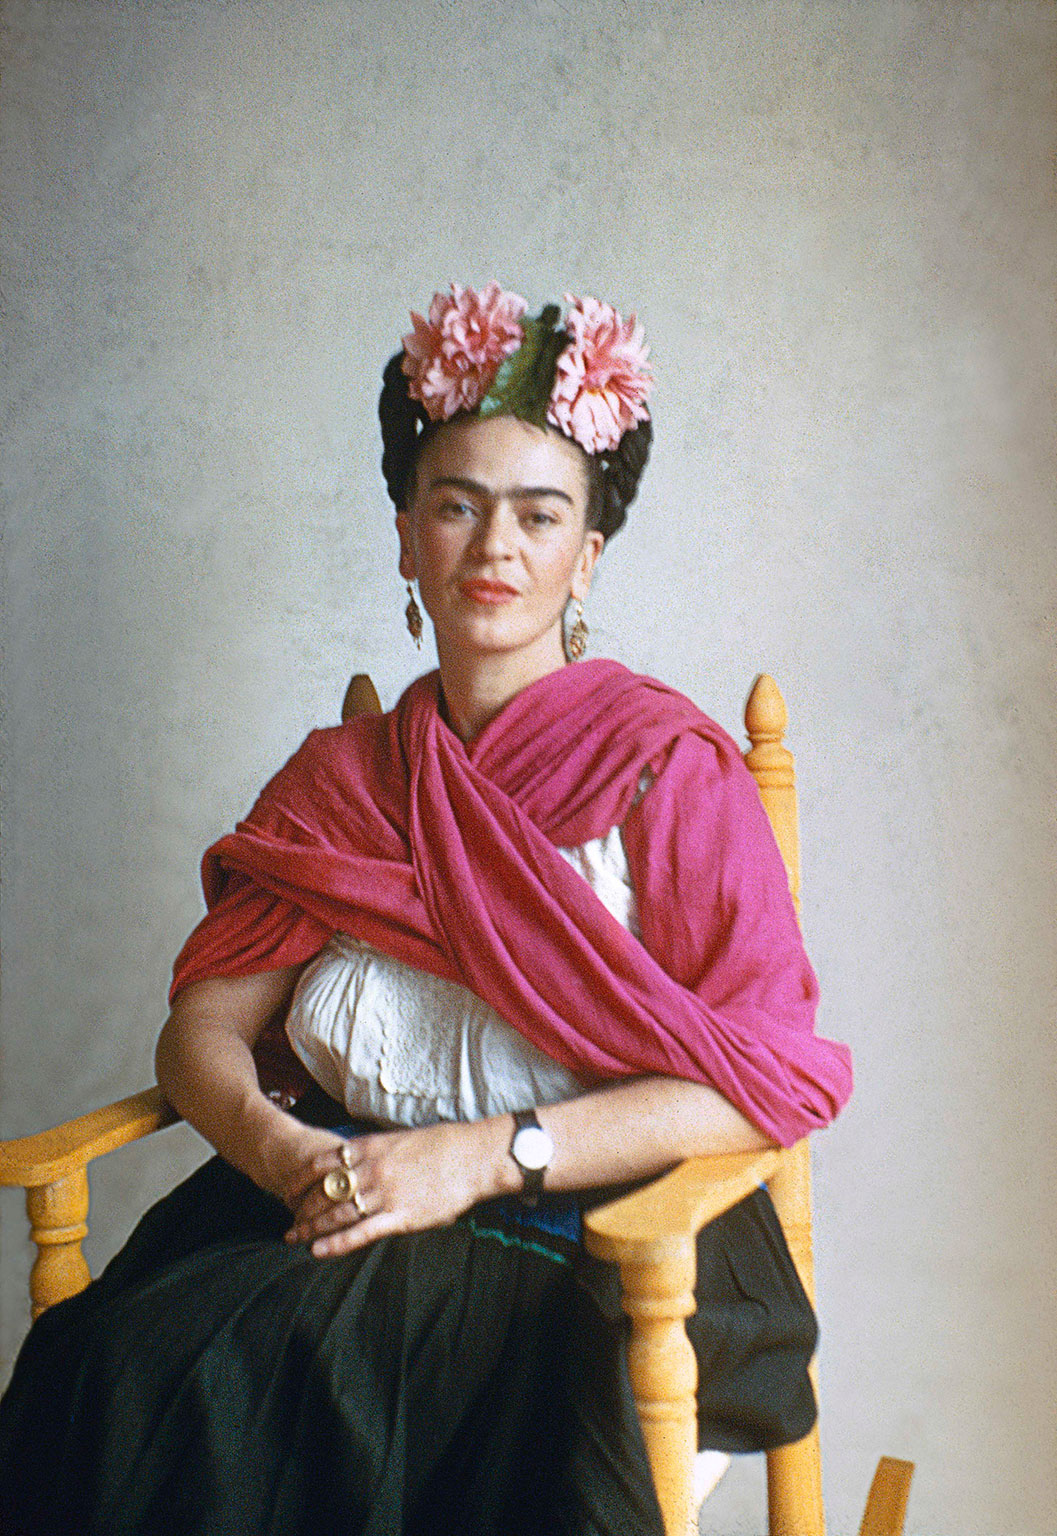 23 beautiful color photos of frida kahlo from between the 1930s and 1950s vintage everyday. Black Bedroom Furniture Sets. Home Design Ideas